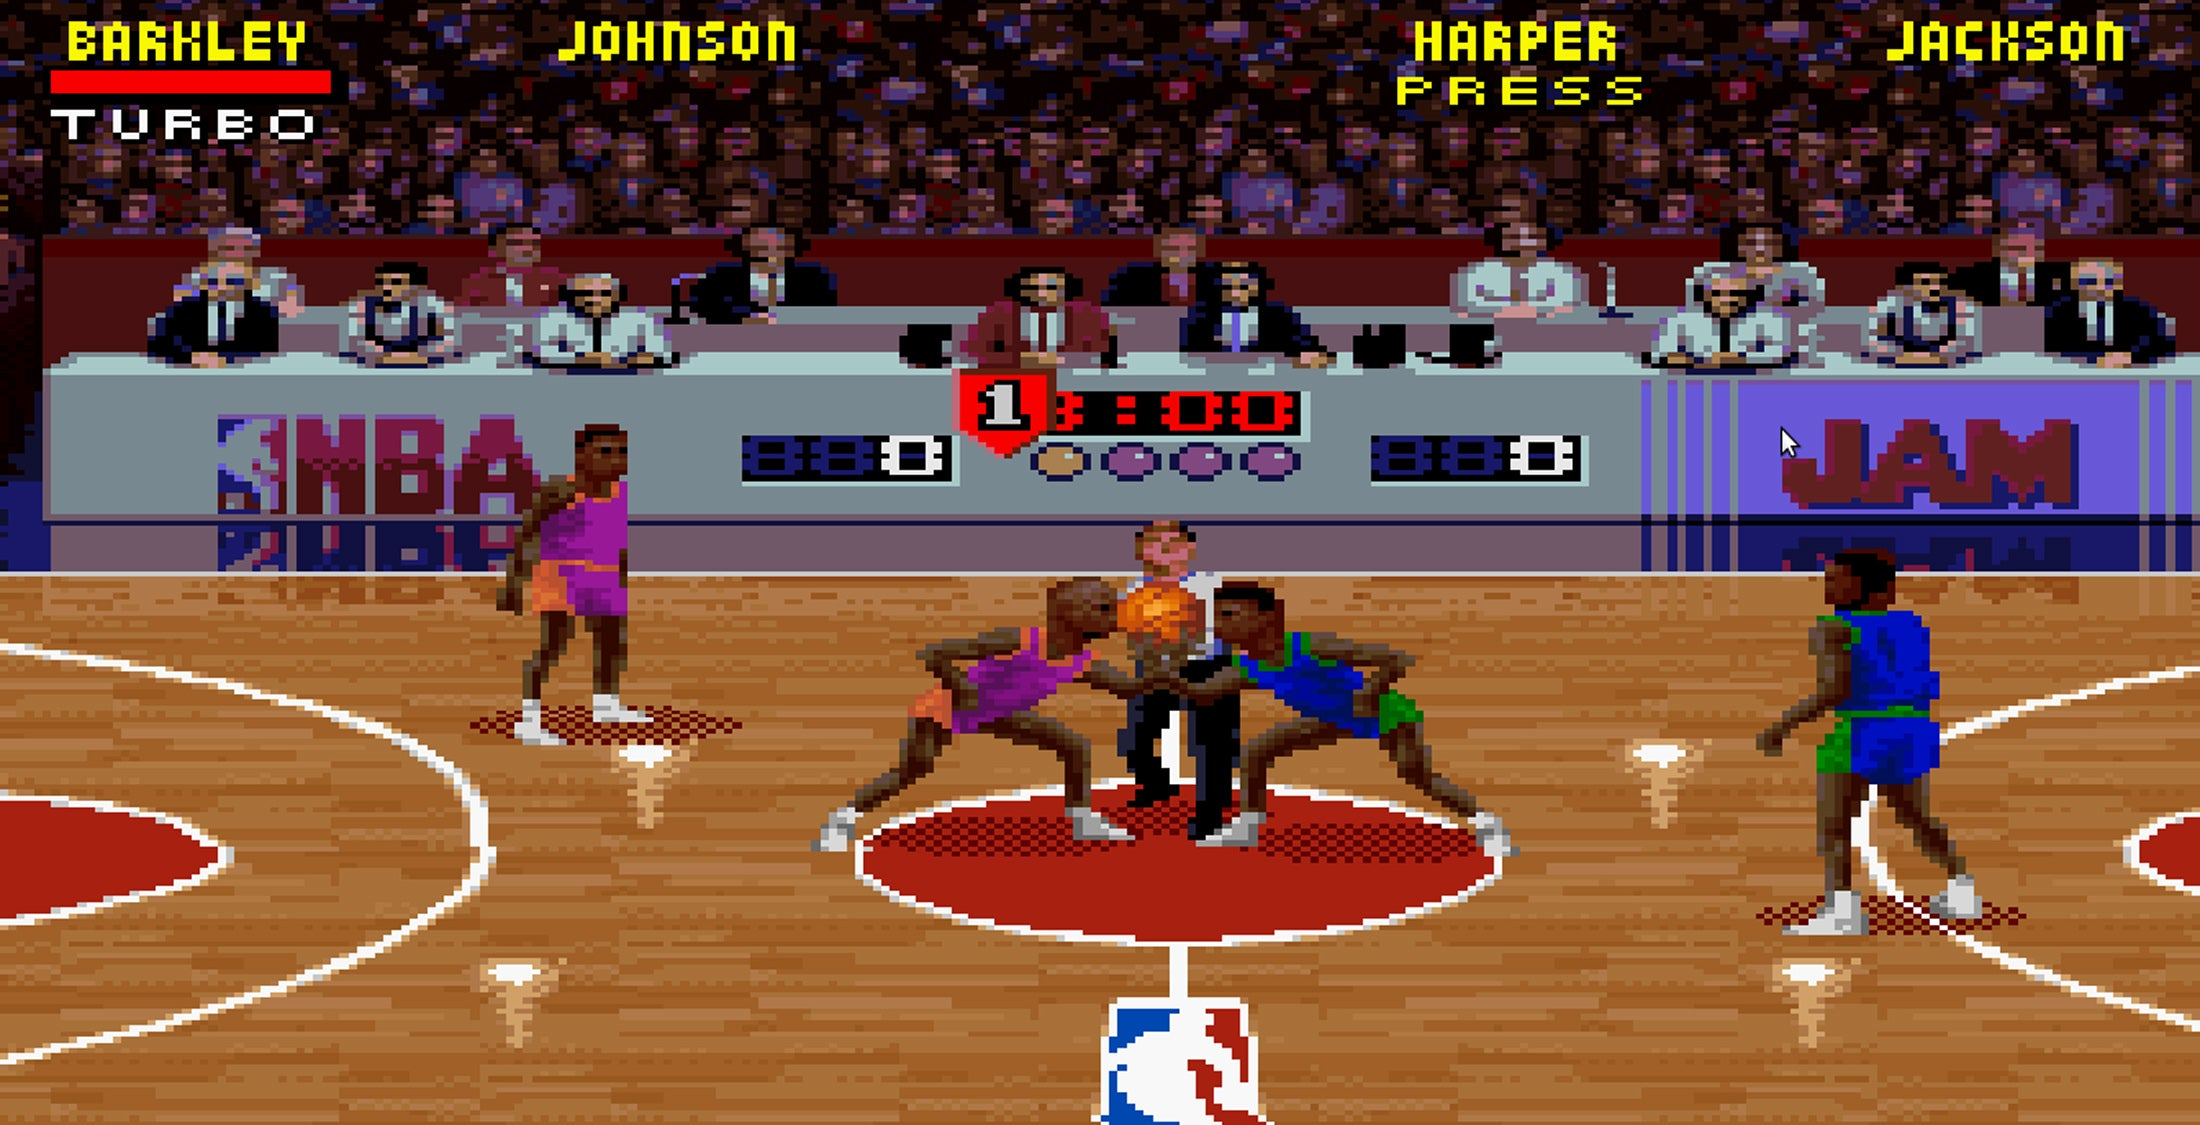 The Nba Jam 25th Anniversary Remake Chatter Is Heating Up